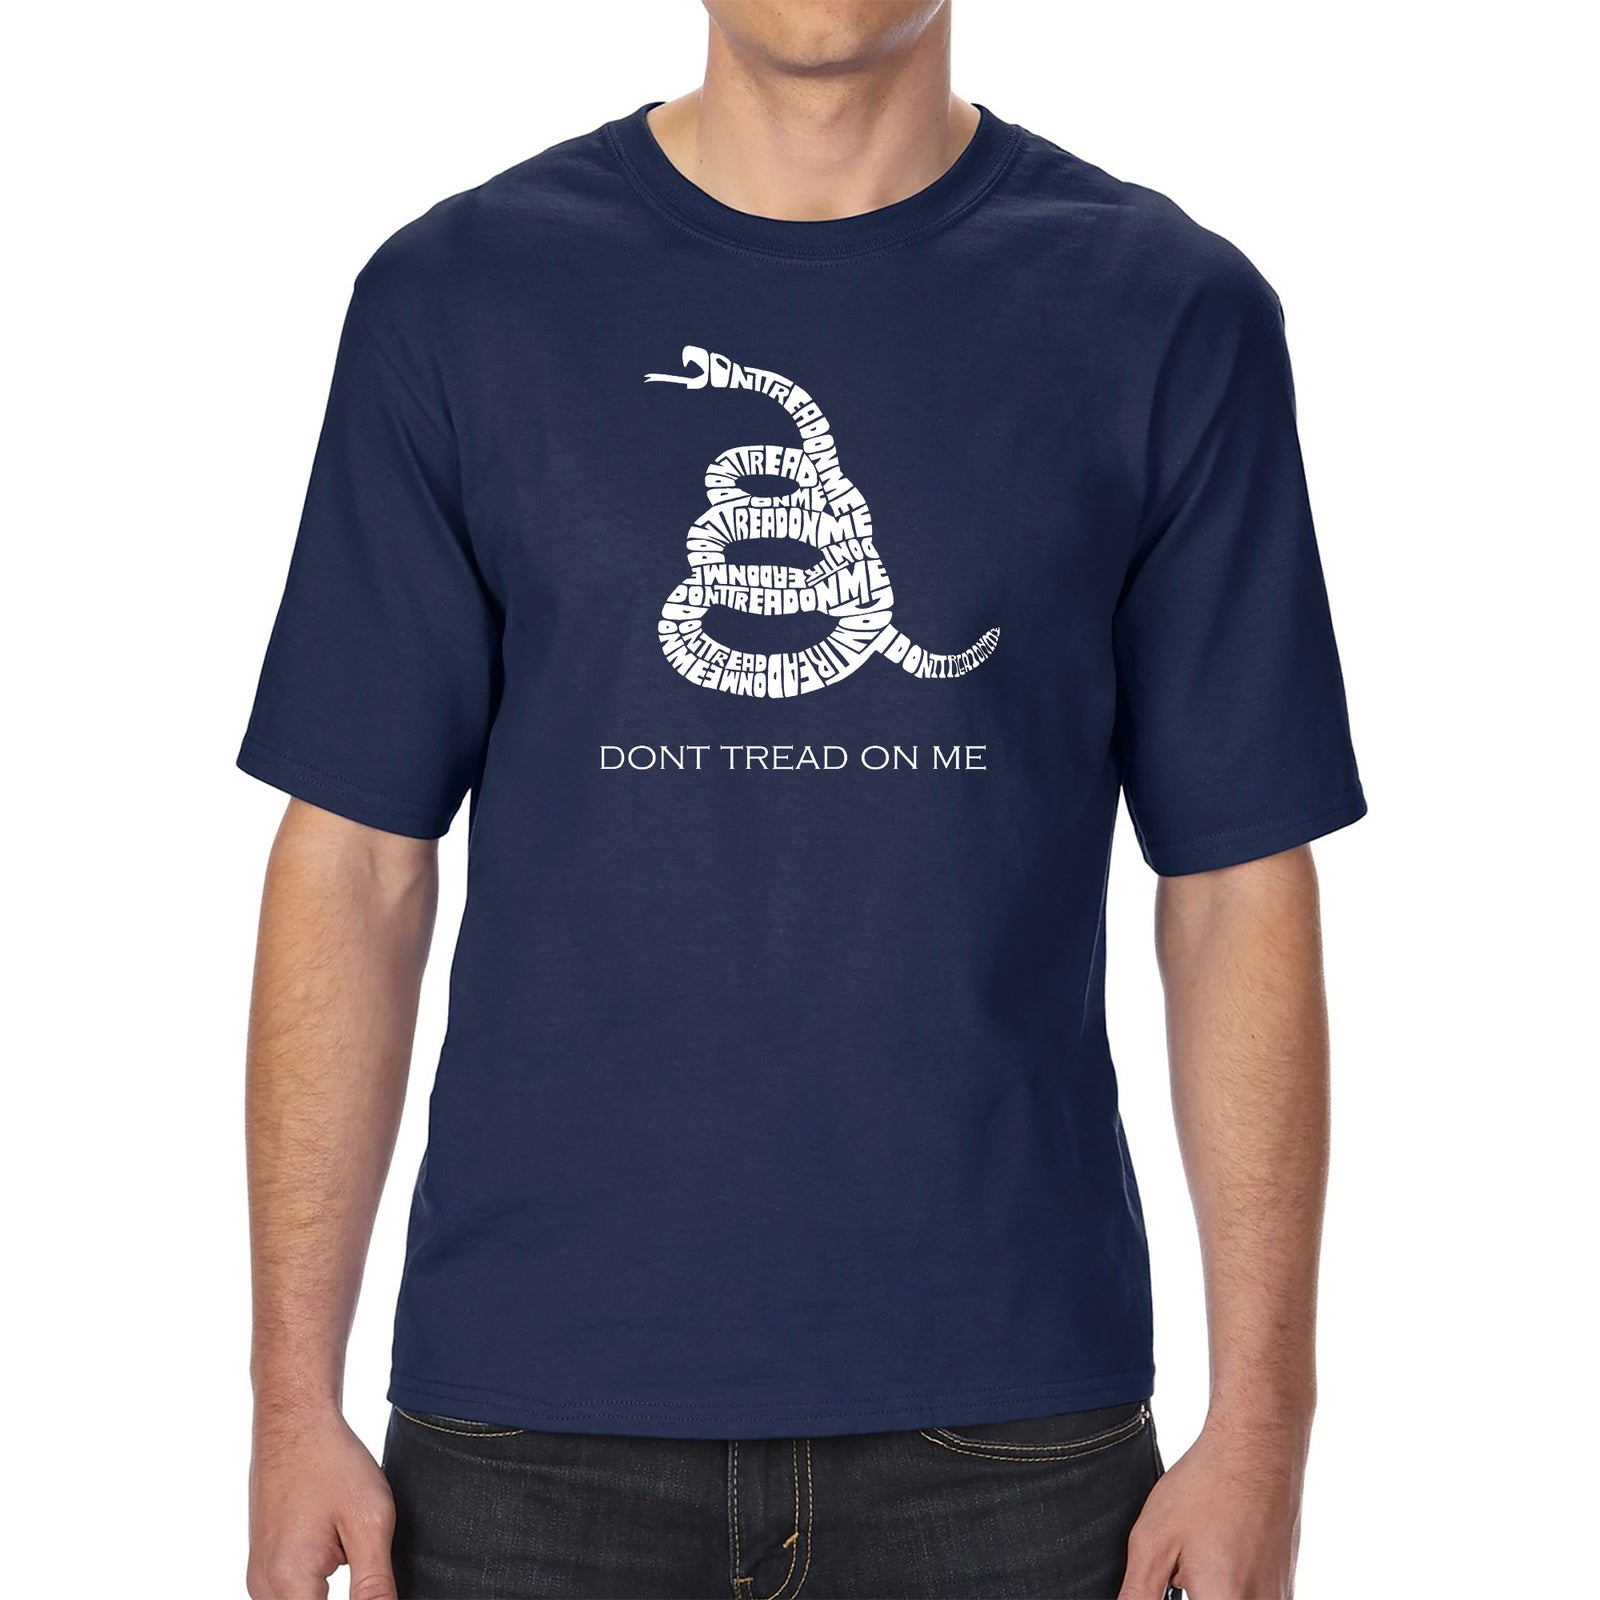 Men's Tall and Long Word Art T-shirt - DONT TREAD ON ME